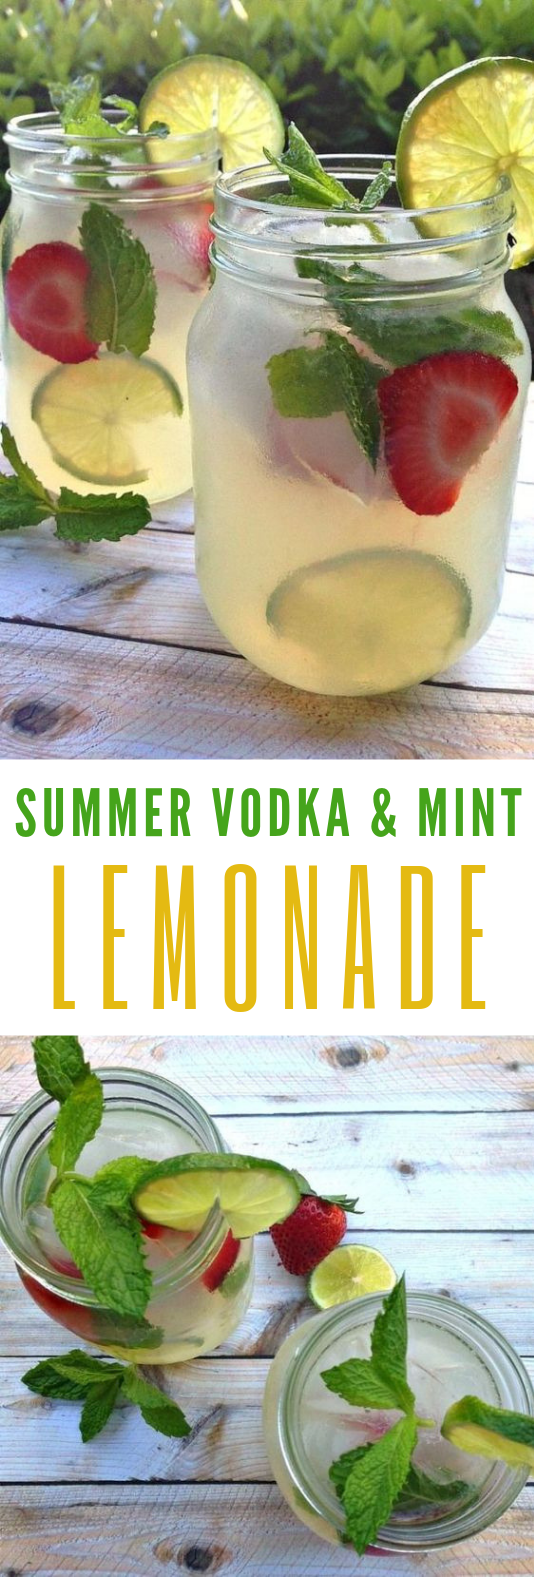 Refreshing Summer Drinks: Vodka Mint Lemonade Cocktail With Stoli #Cocktail #SummerDrinks